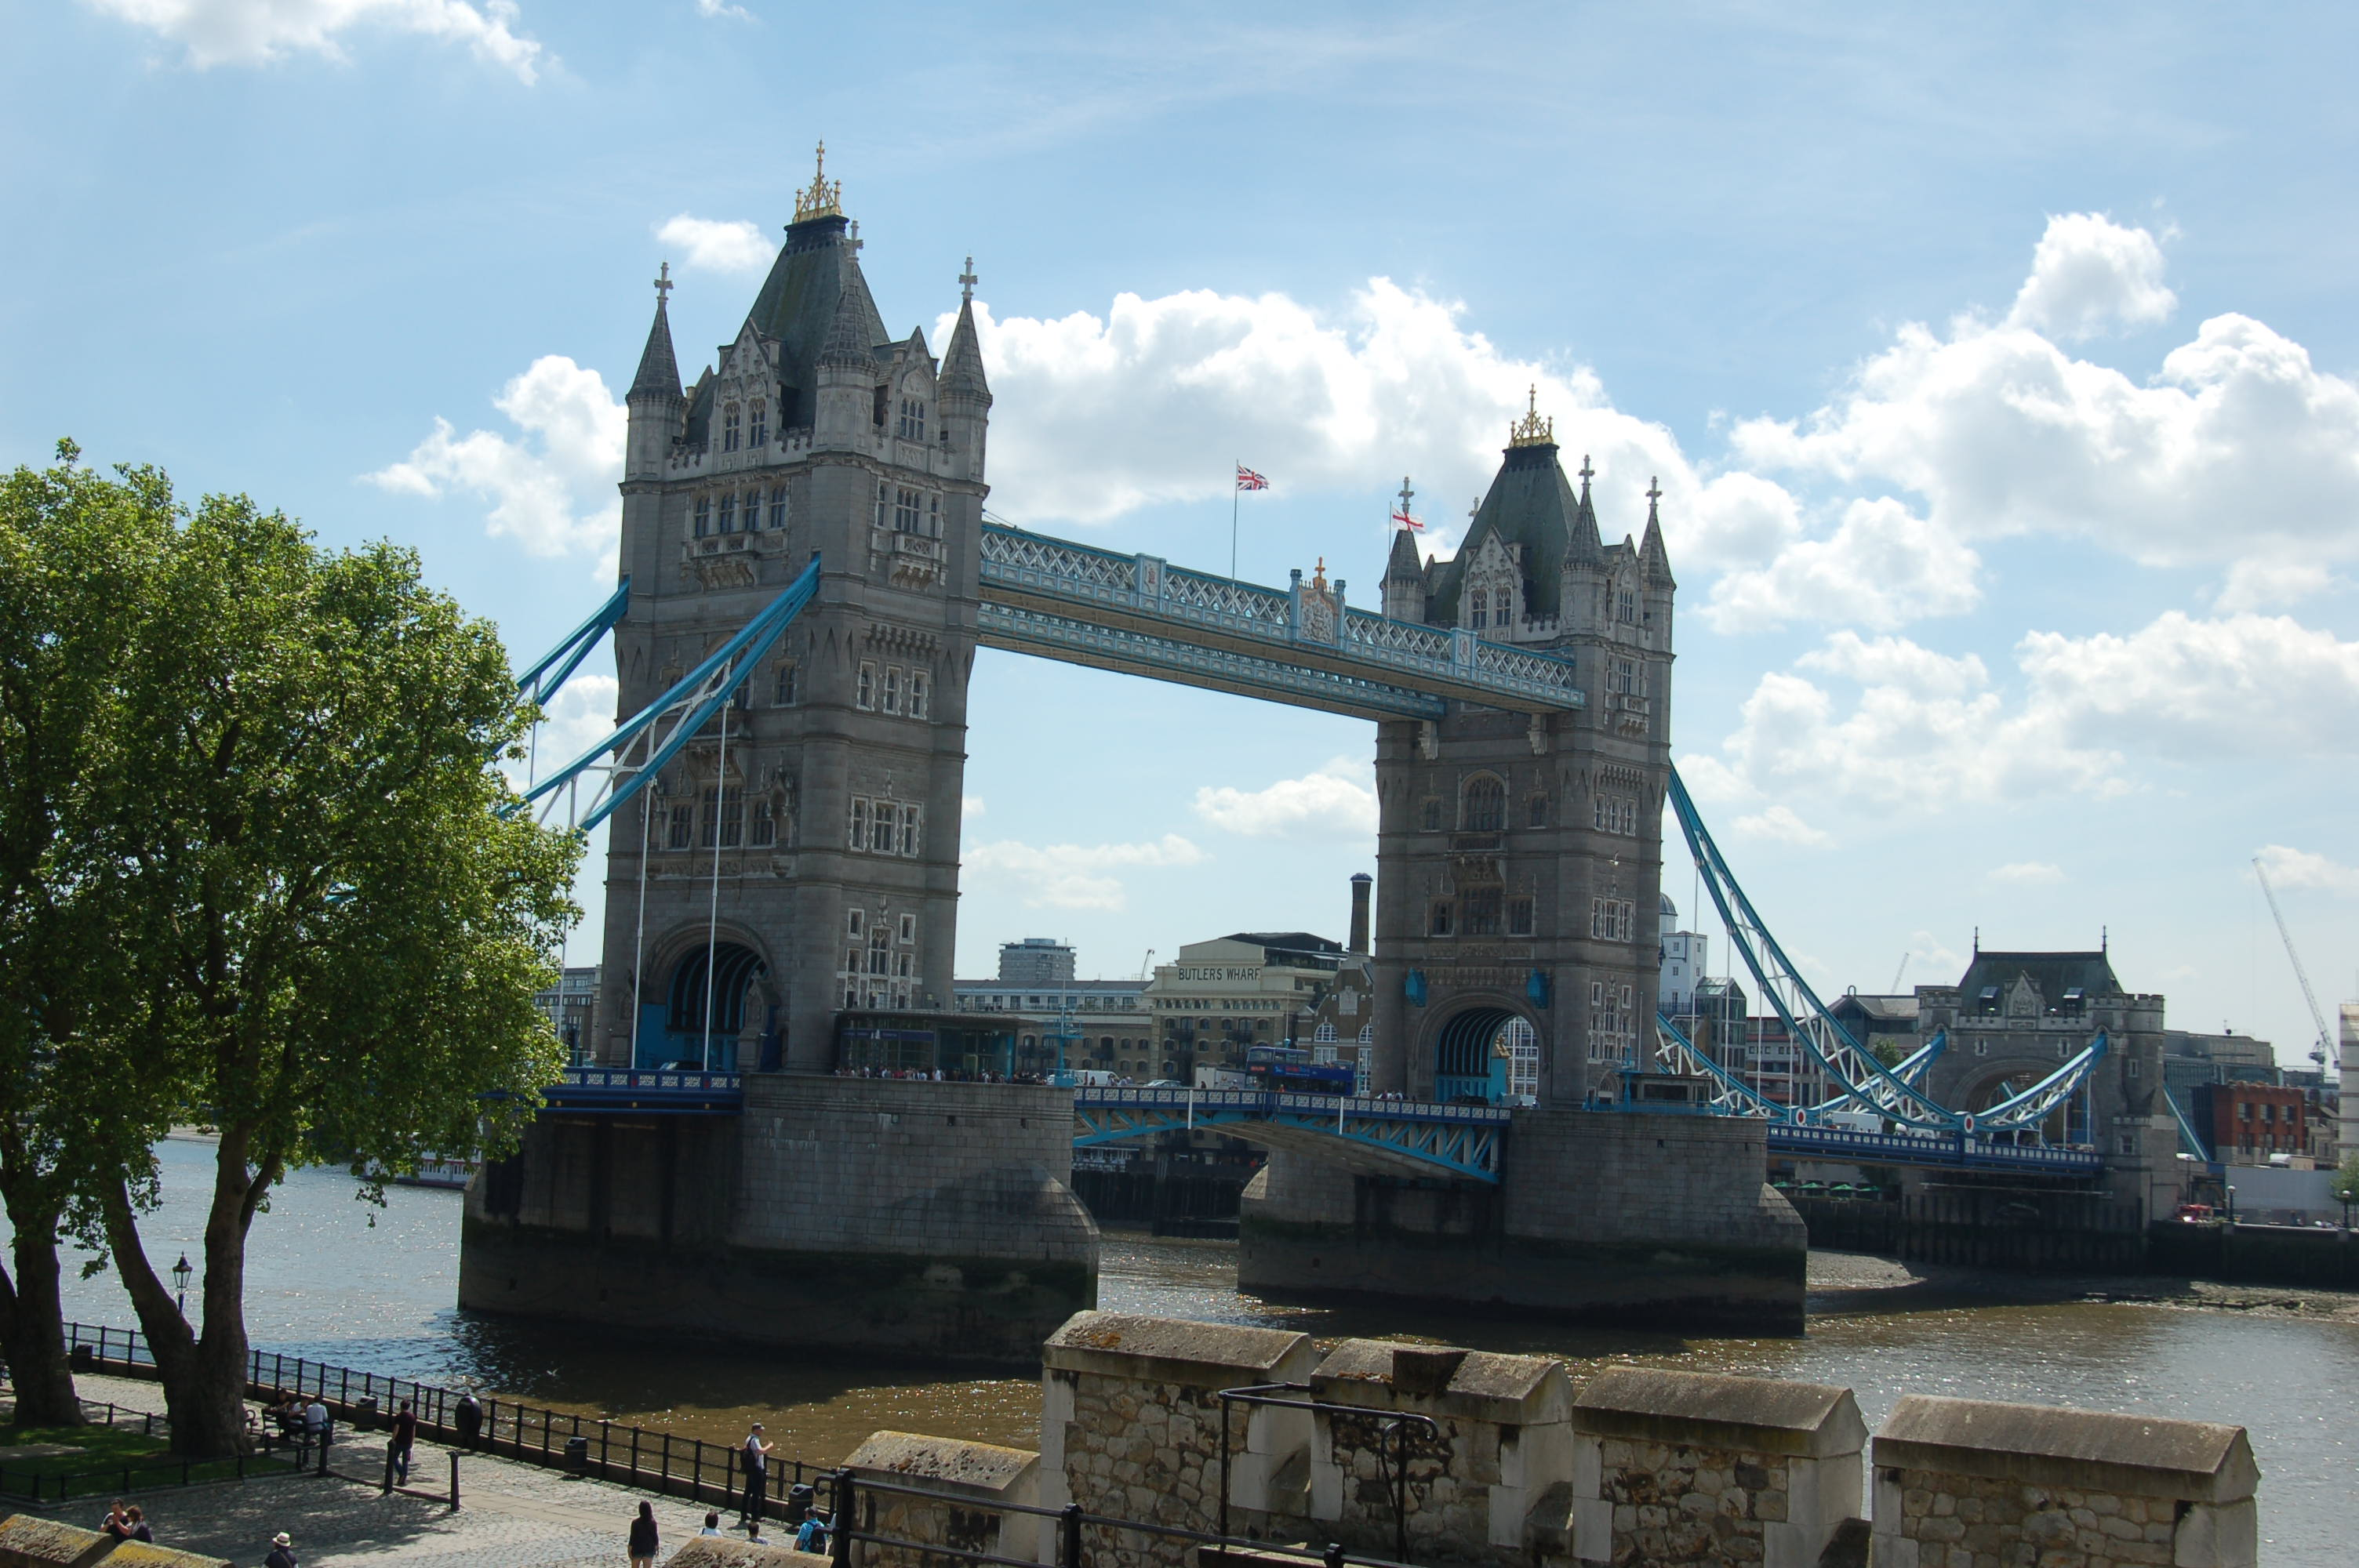 View of the Tower Bridge